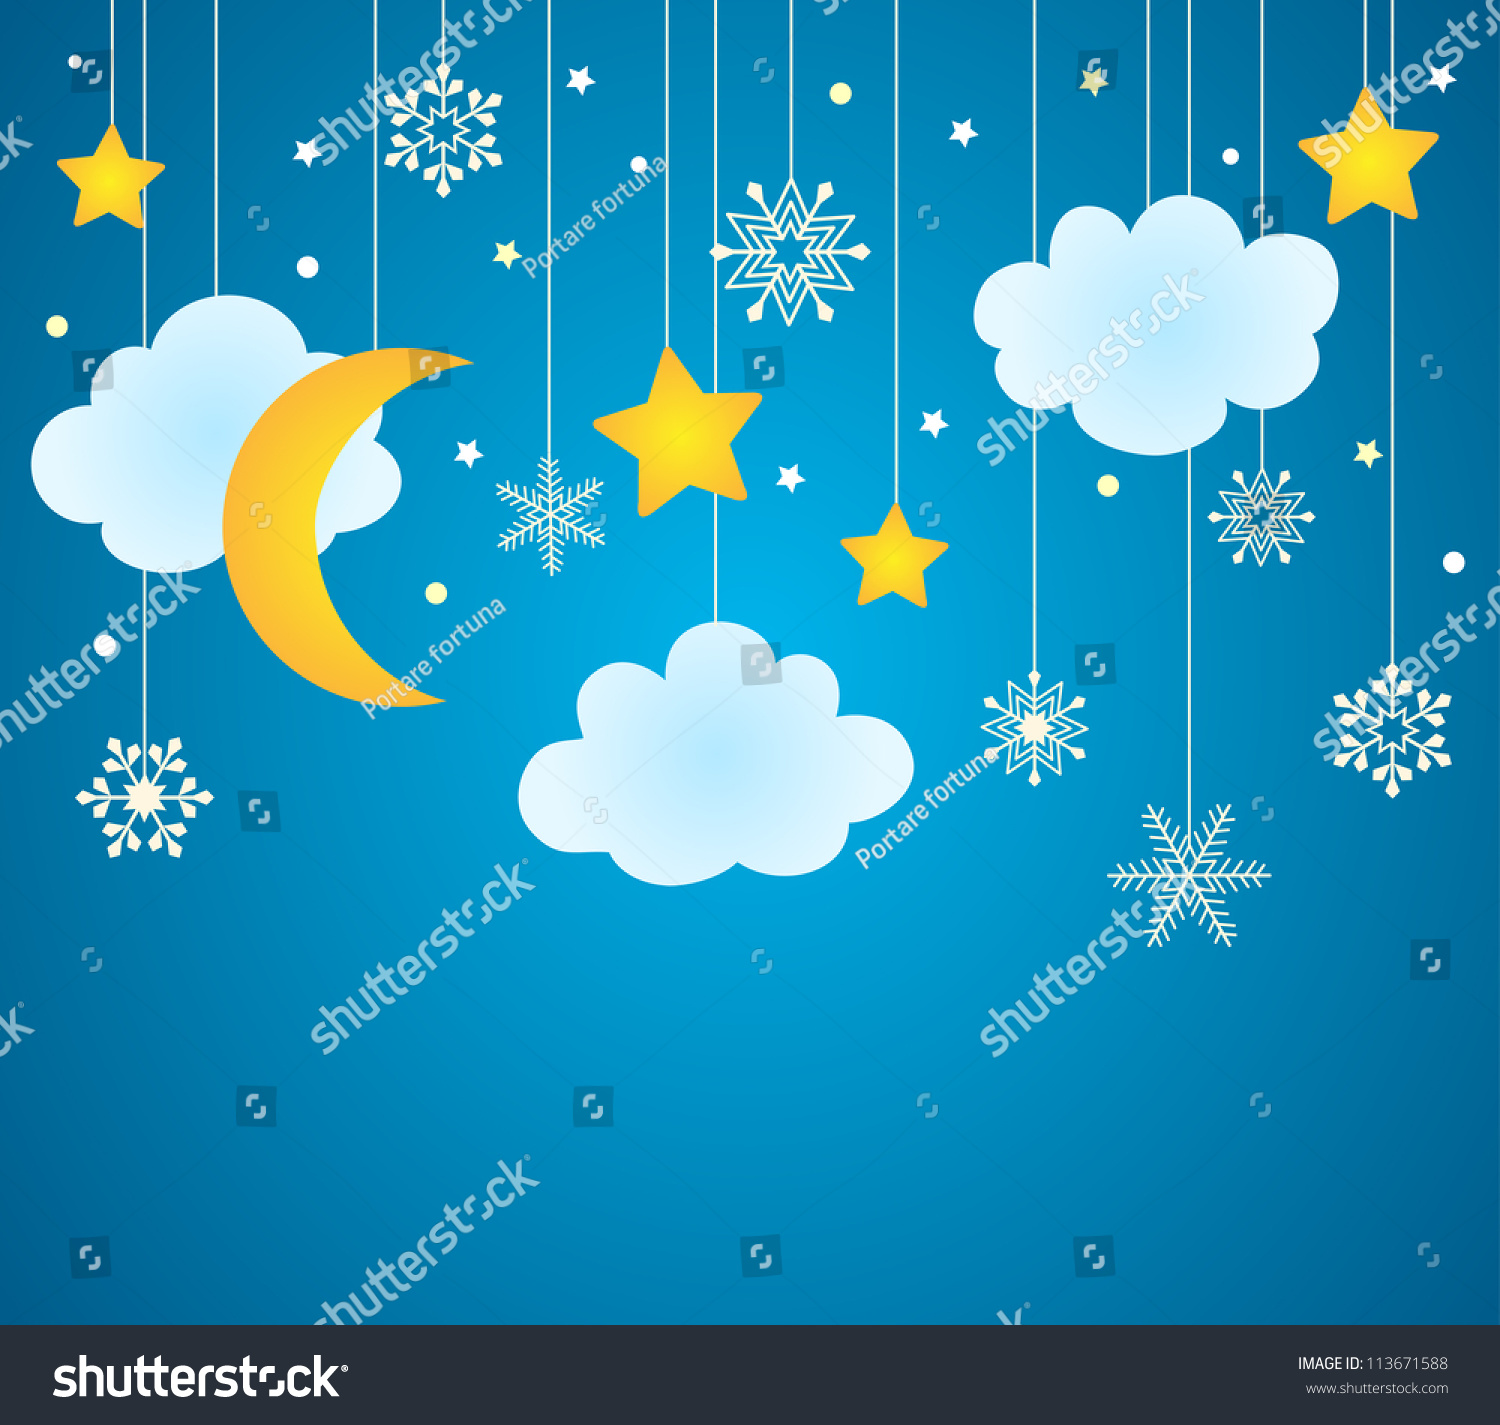 vector blue background hanging clouds moon stock vector 113671588